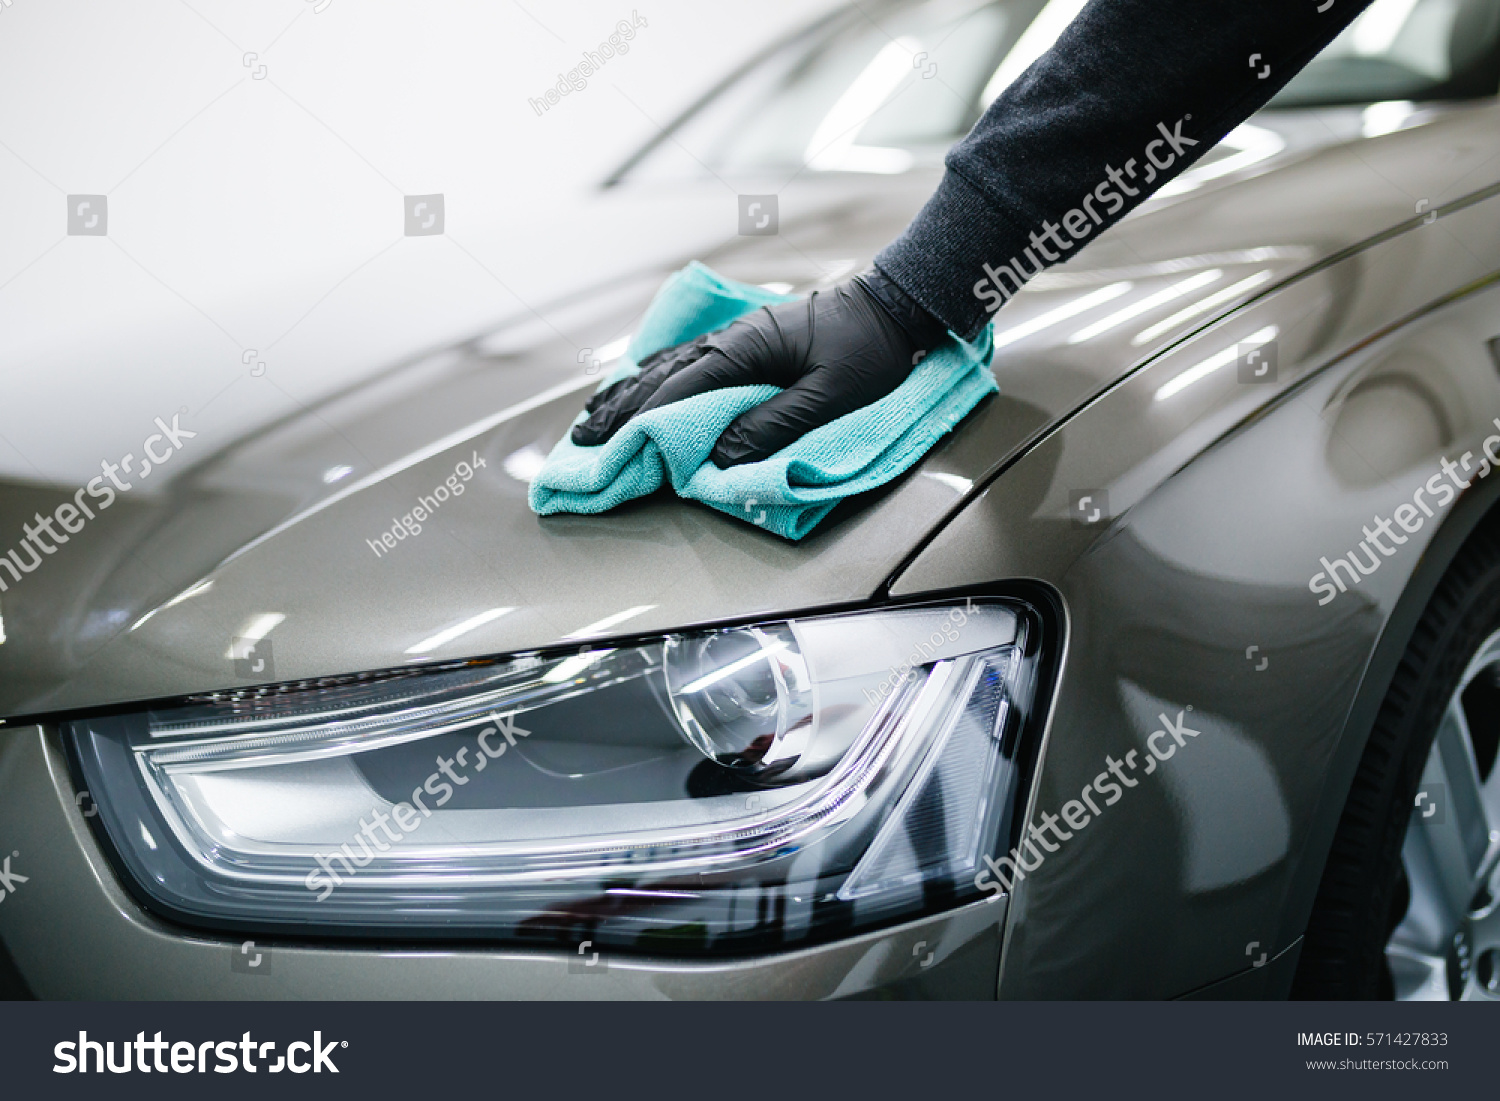 man cleaning car microfiber cloth car stockfoto (jetzt bearbeiten